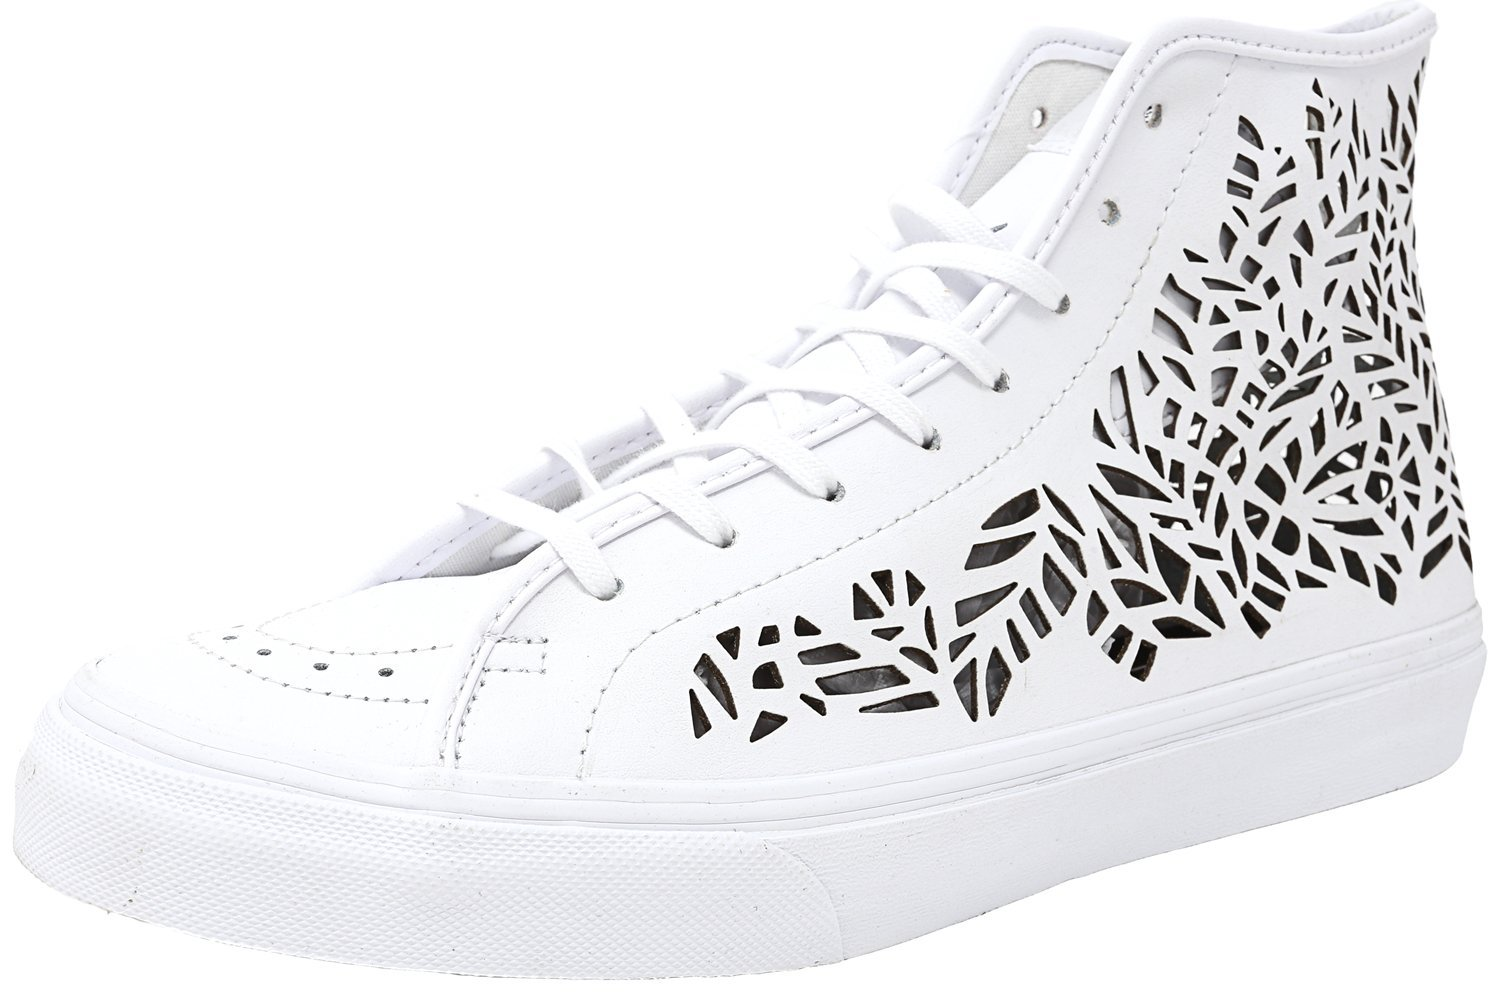 Vans Womens Sk8-Hi Decon Leather Hight Top Lace up Fashion Sneakers B01A94ZTX4 9 B(M) US|Leaves/White